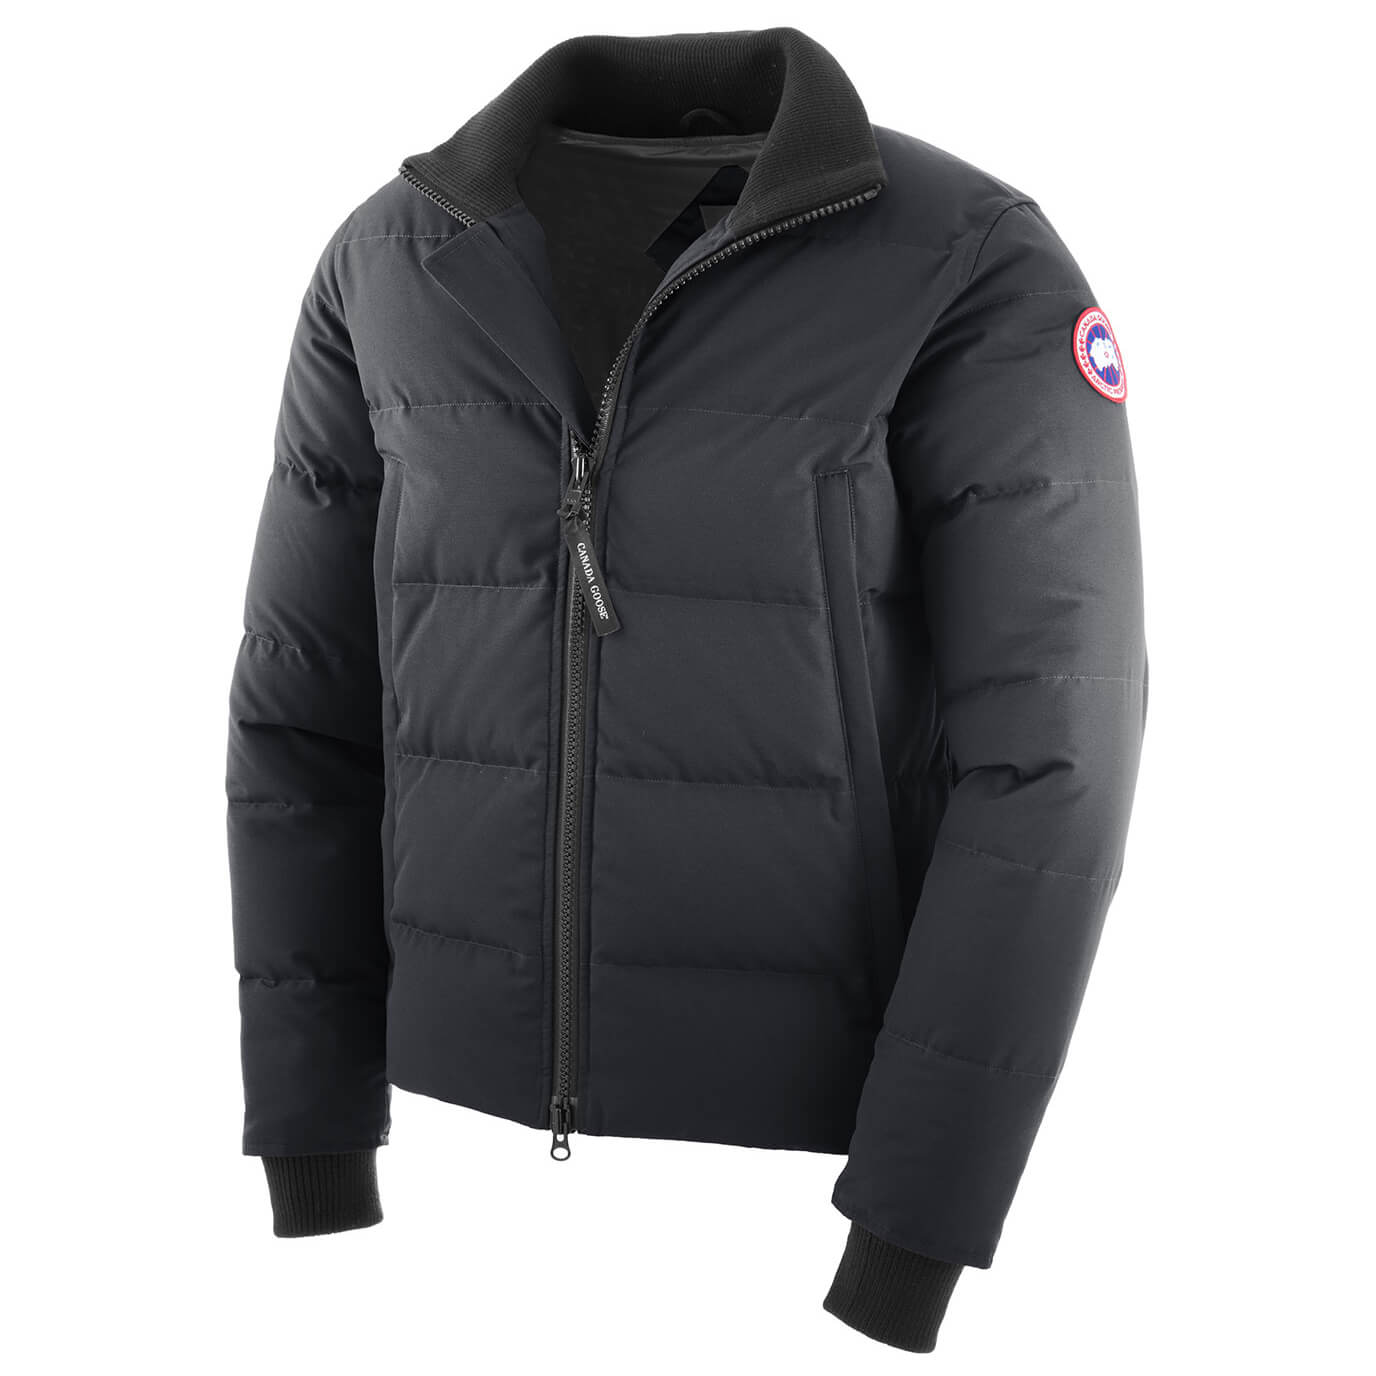 2aea5942580 Canada Goose Woolford Jacket - Down Jacket Men's | Free UK Delivery ...